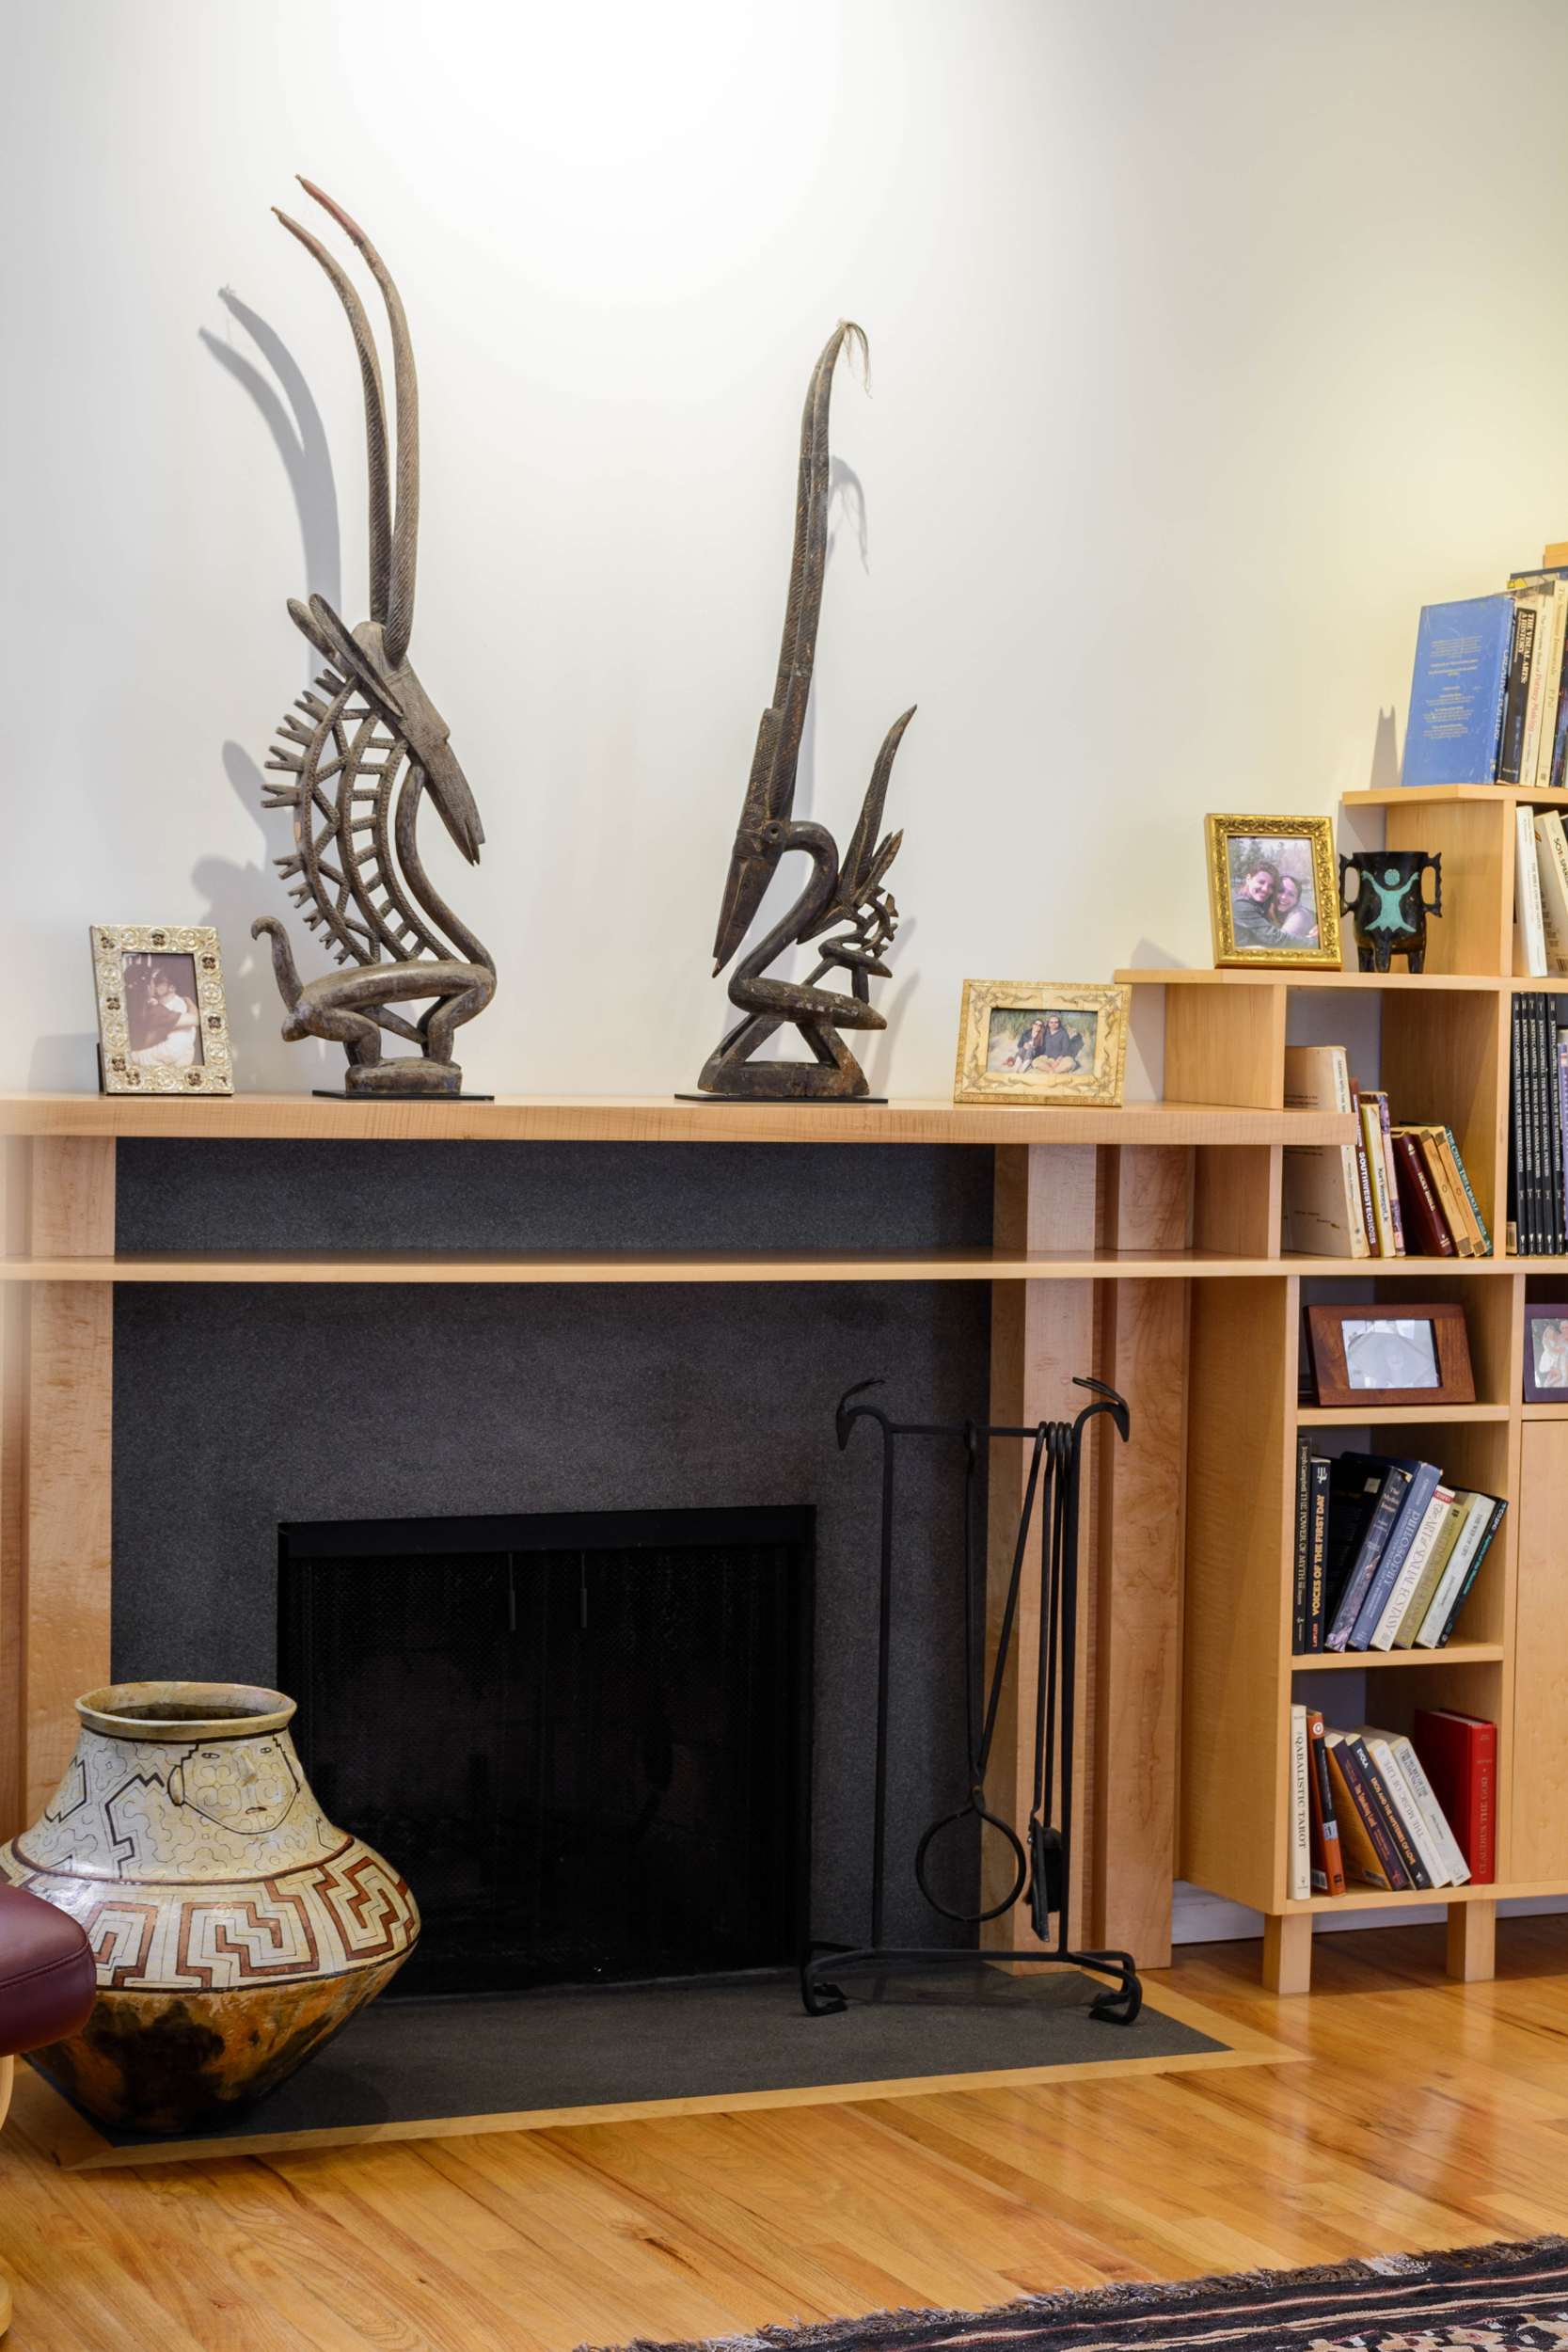 Living room fireplace with absolute black granite and a curved maple mantel which seamlessly transitions with the bookshelves